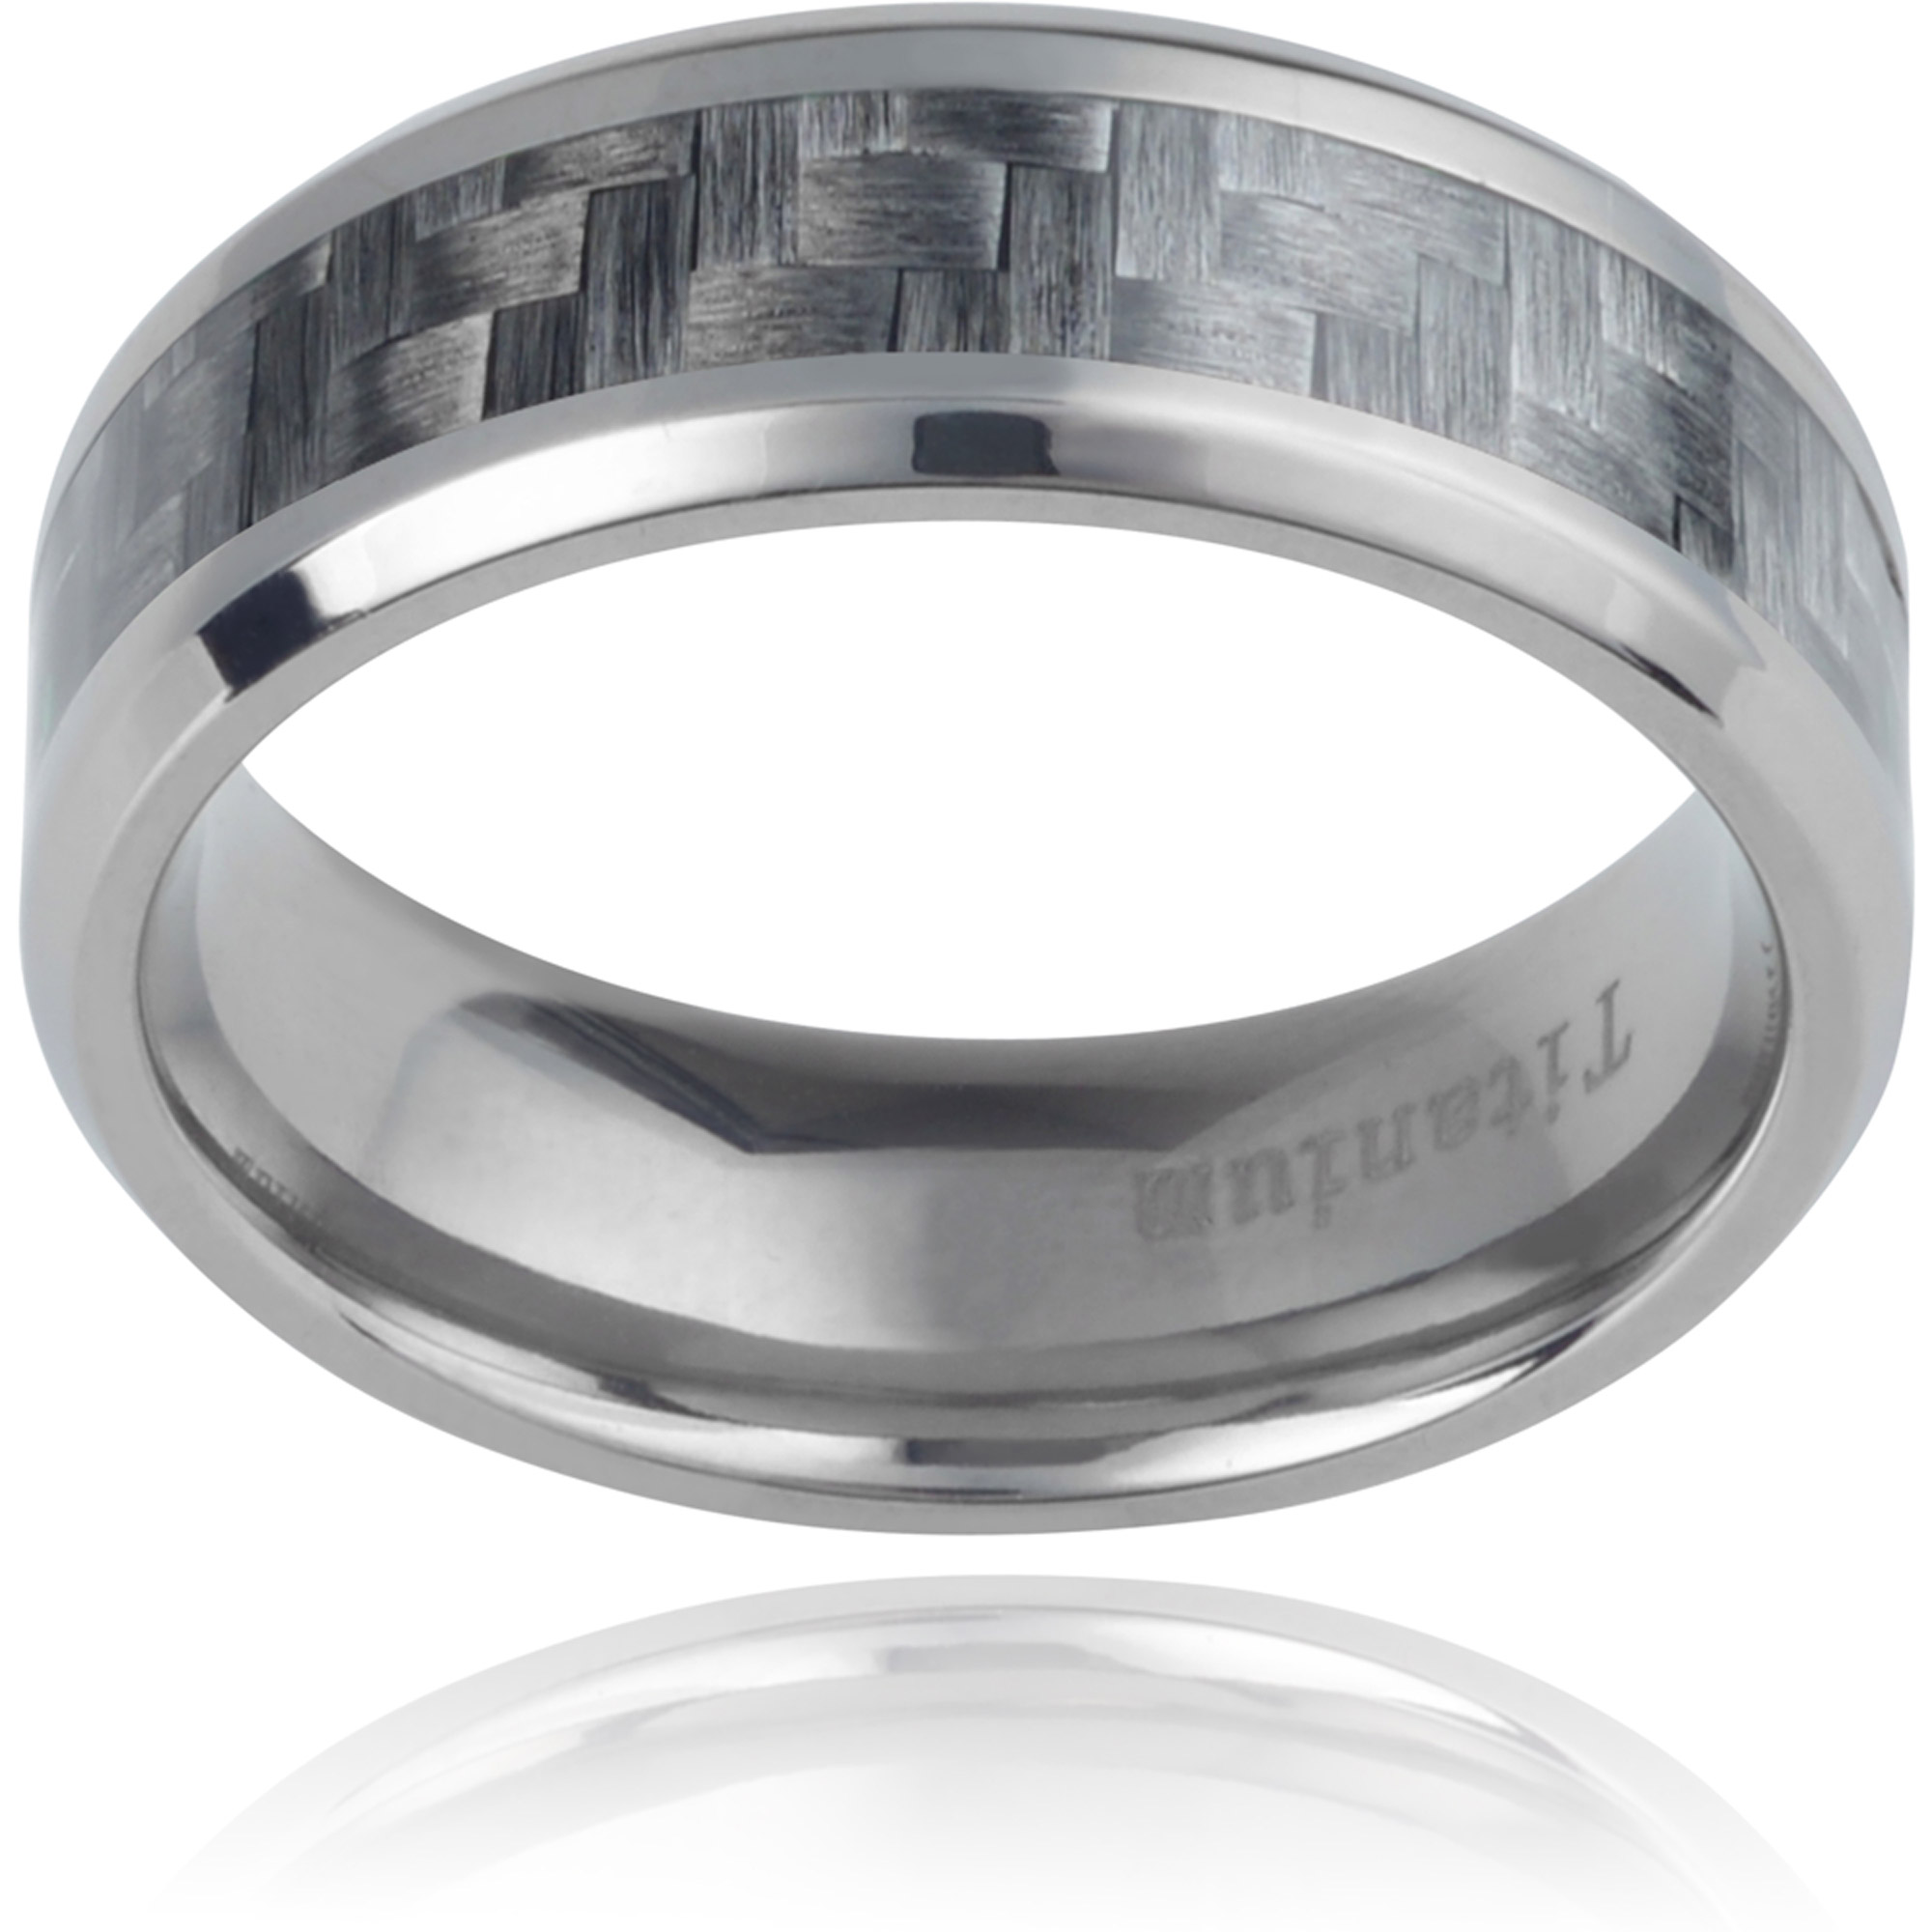 Daxx Men's Titanium Carbon Fiber Inlay Fashion Ring, Grey